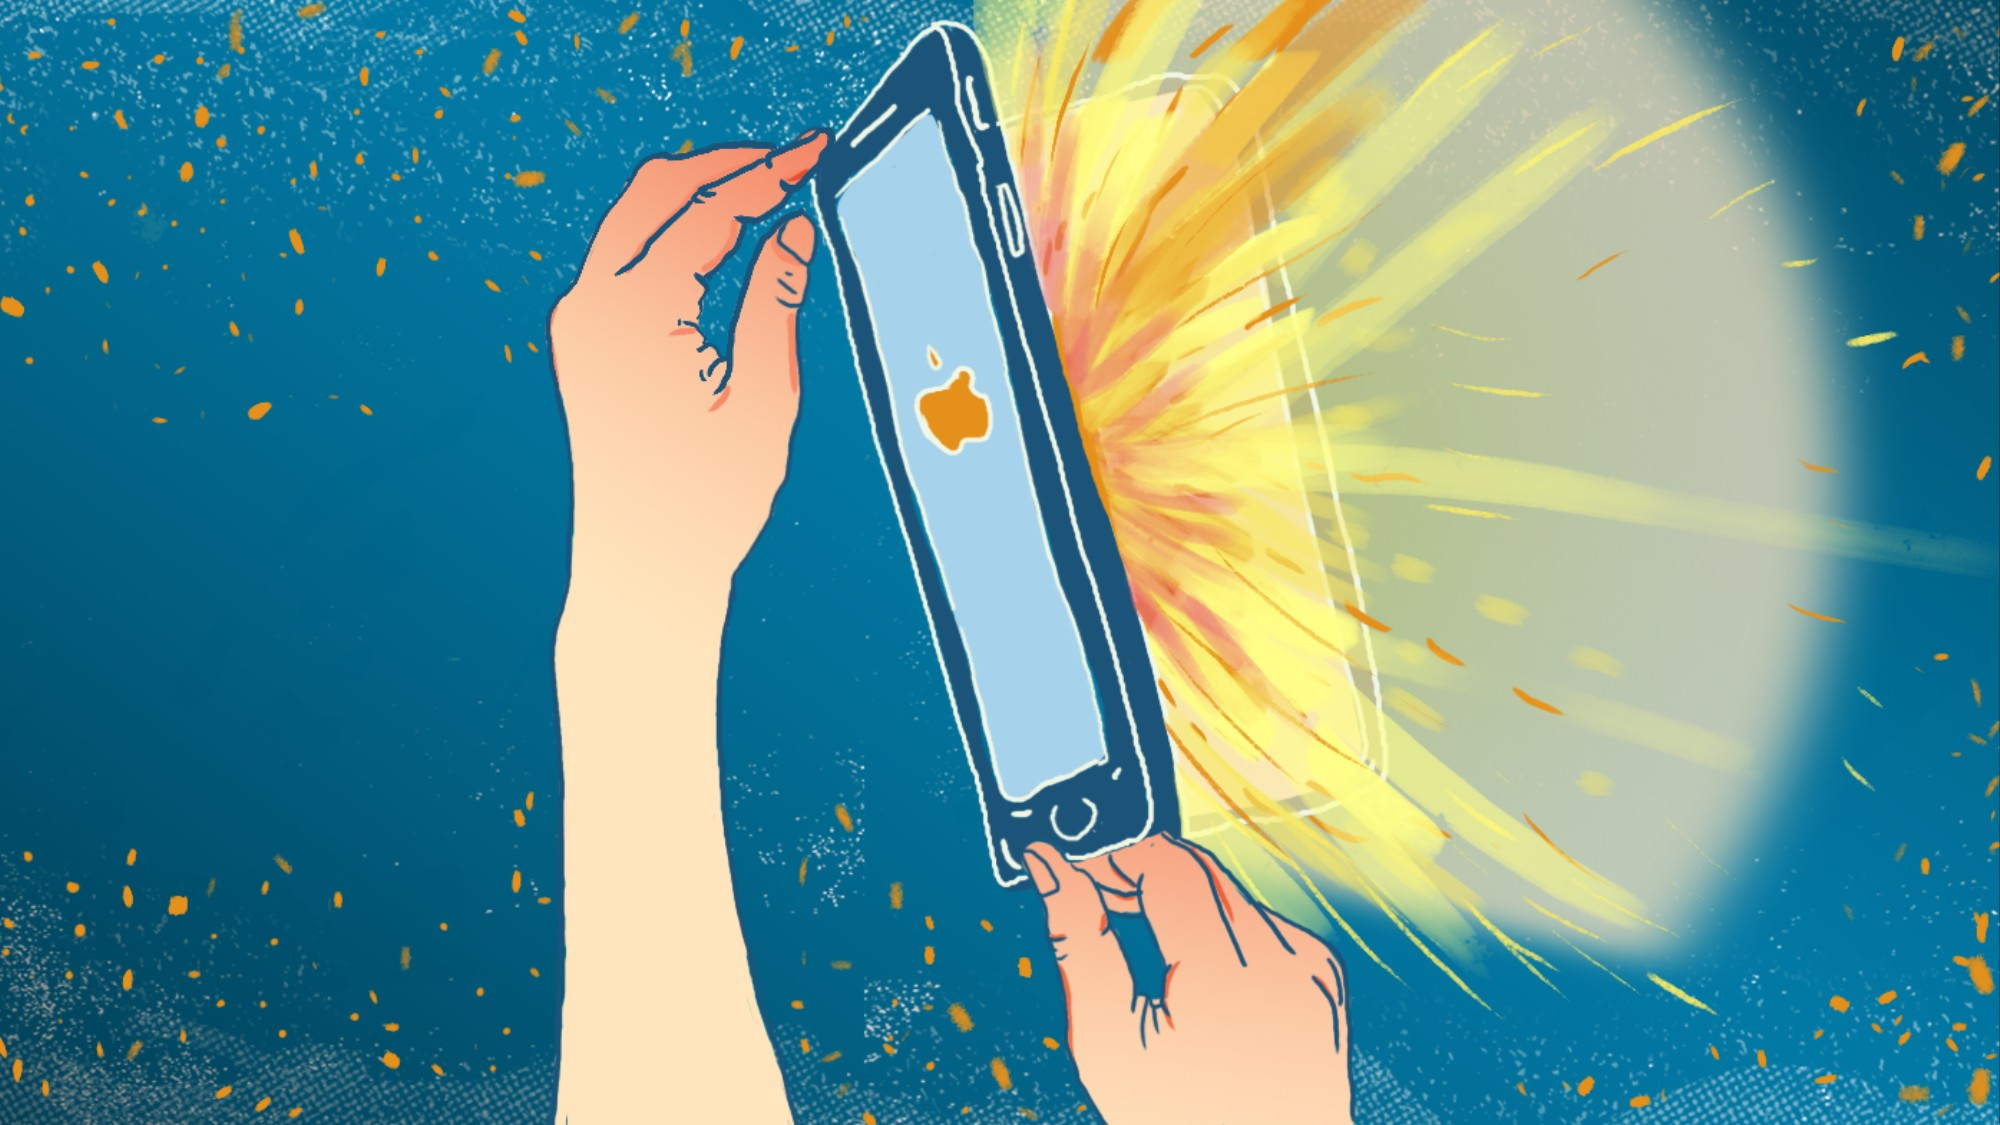 How a Low-Level Apple Employee Leaked Some of the iPhone's Most